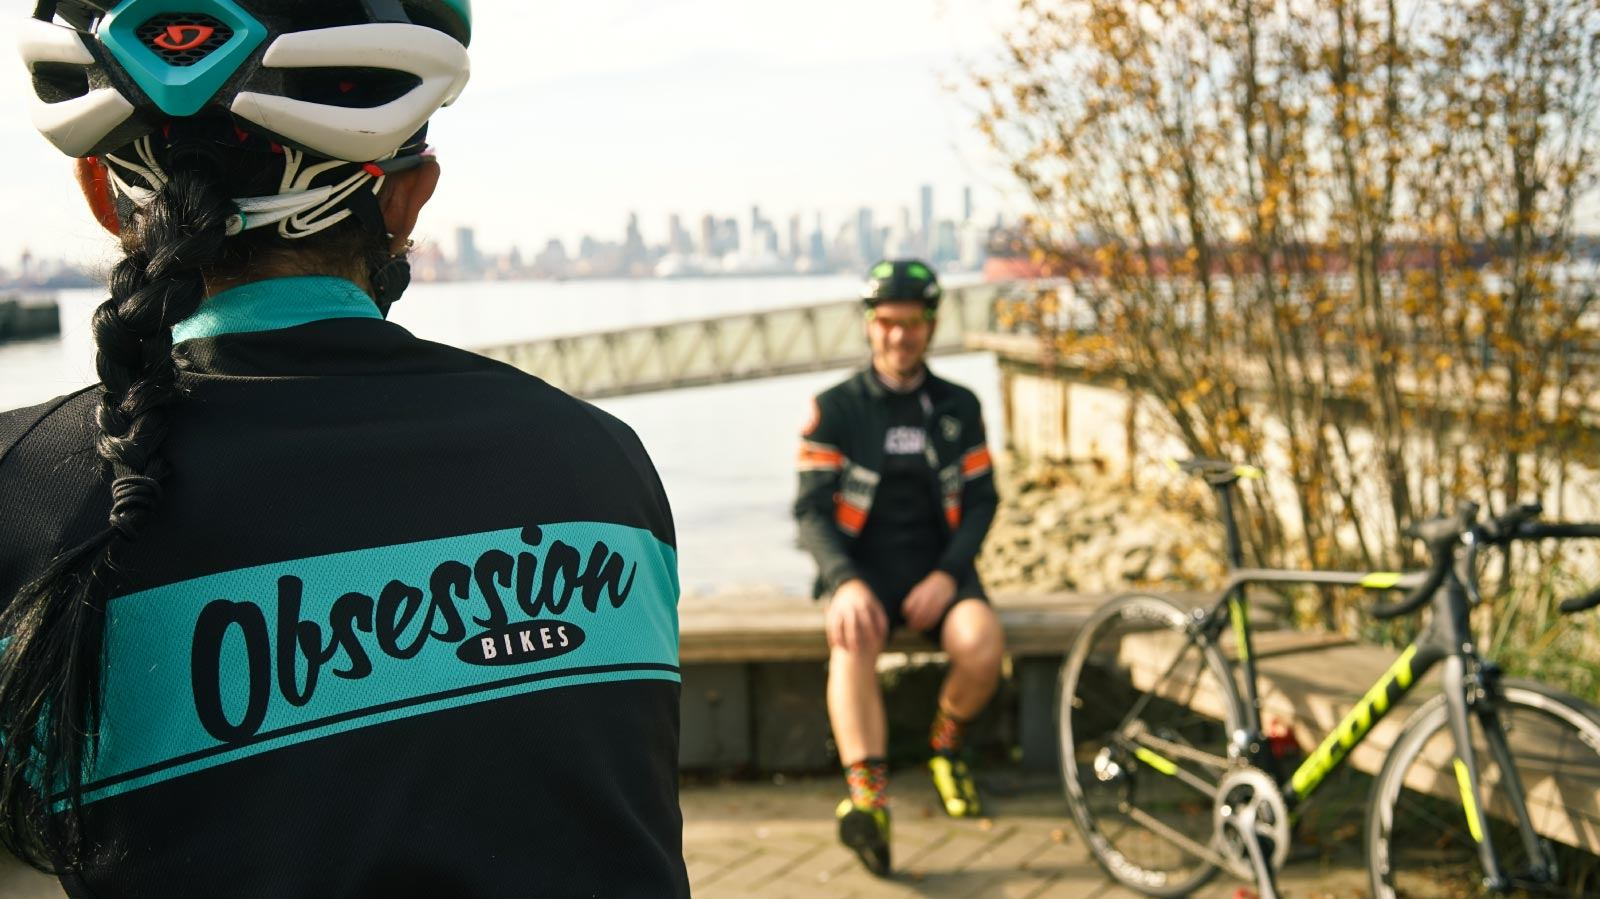 Obsession Bikes branded clothing